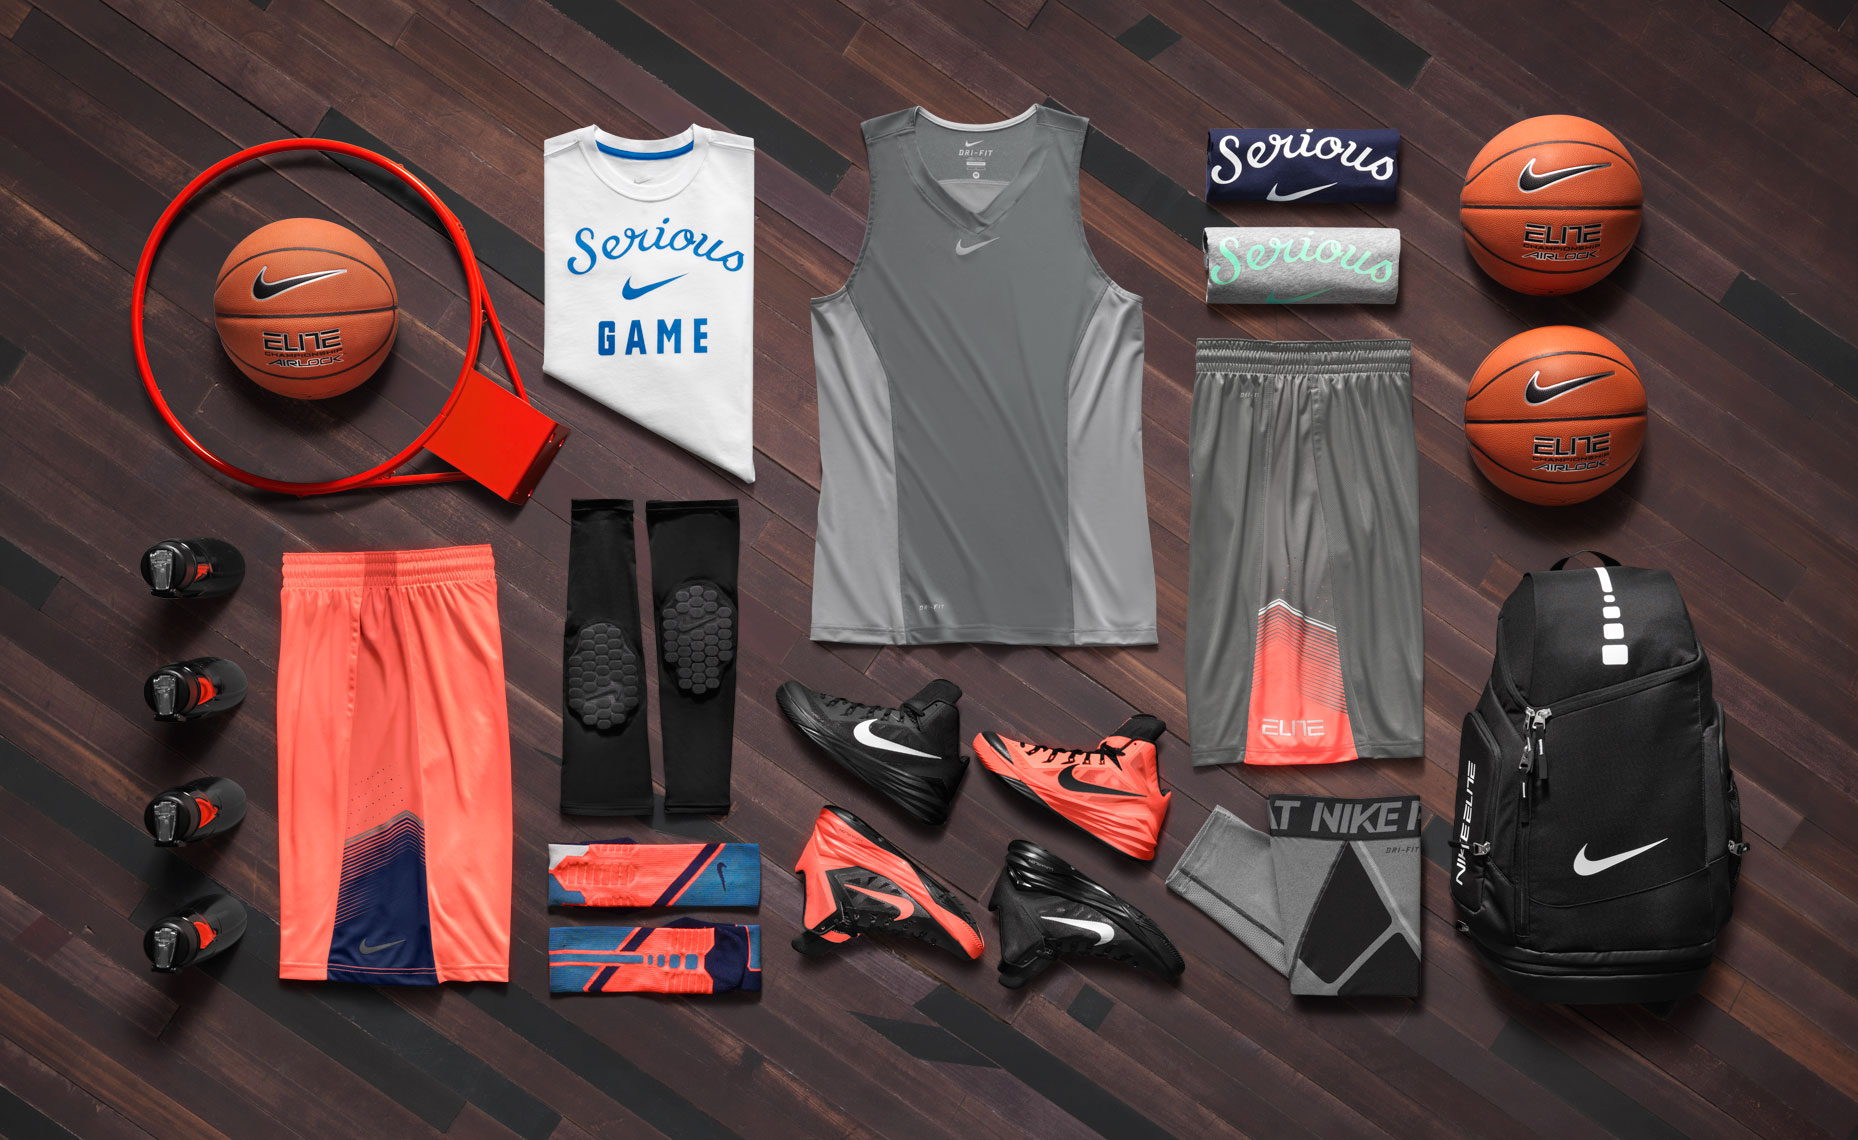 nike kevin durant basketball apparel on a wood backgorund